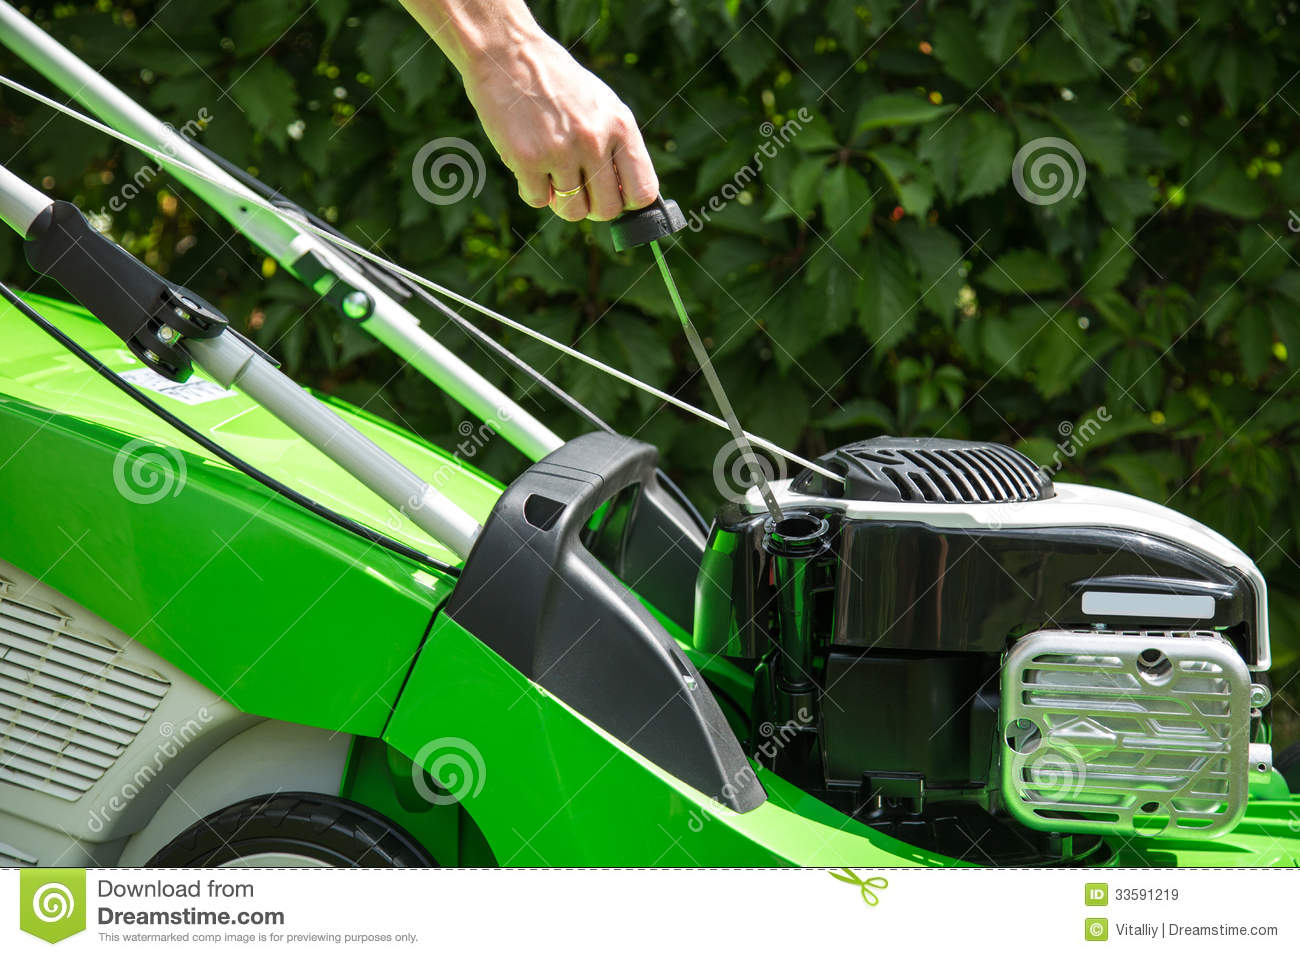 how to add oil to lawn mower